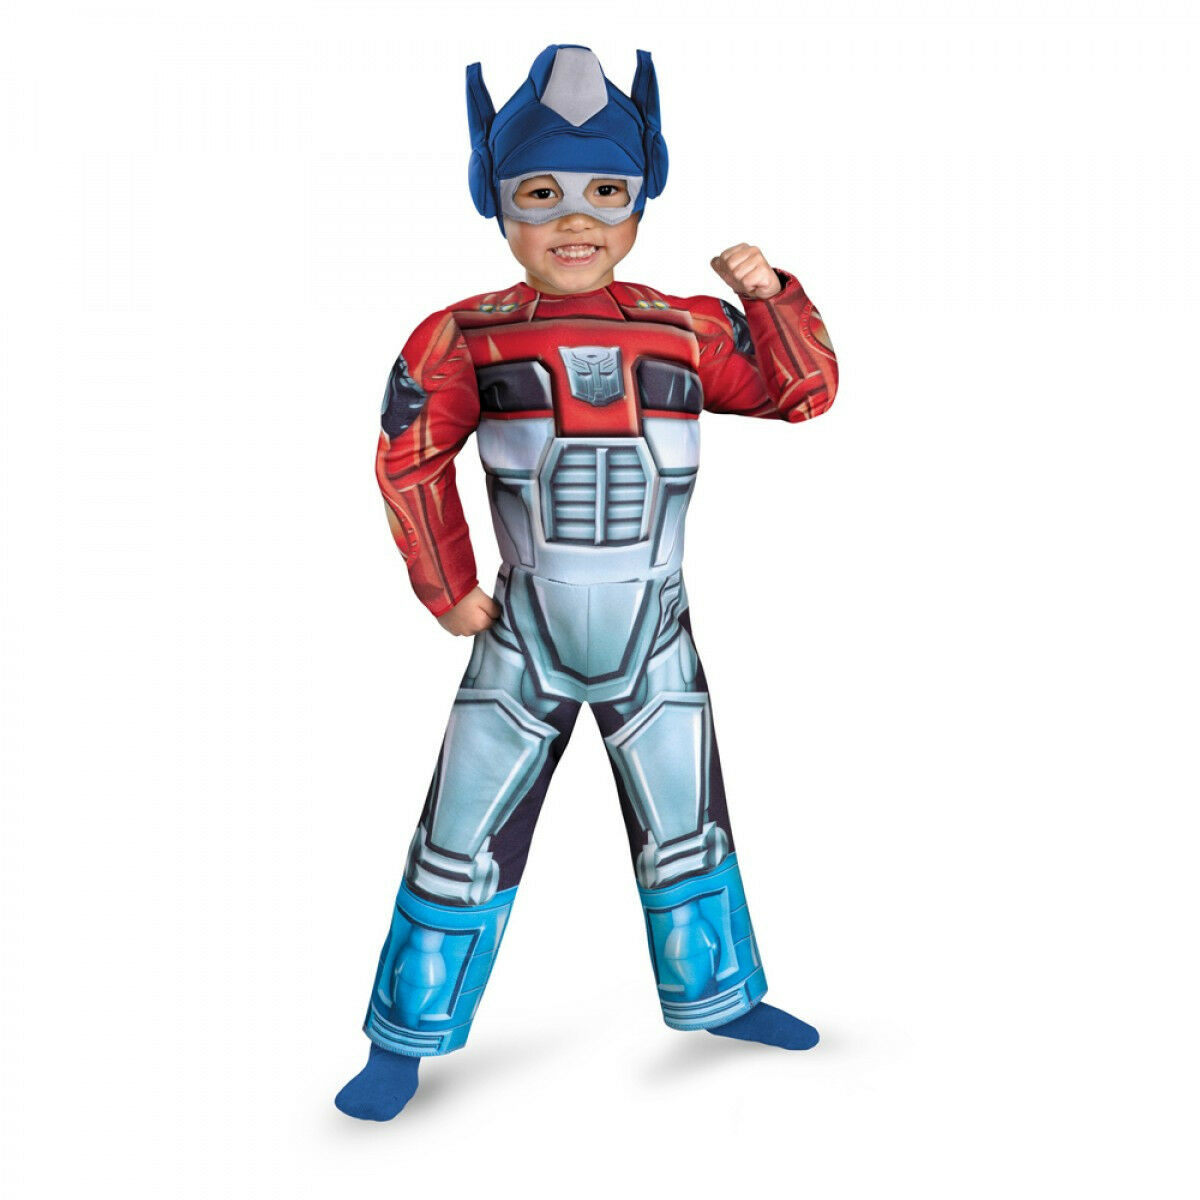 TODDLER OPTIMUS PRIME RESCUE BOT COSTUME SIZE TD  3T-4T missing headpiece